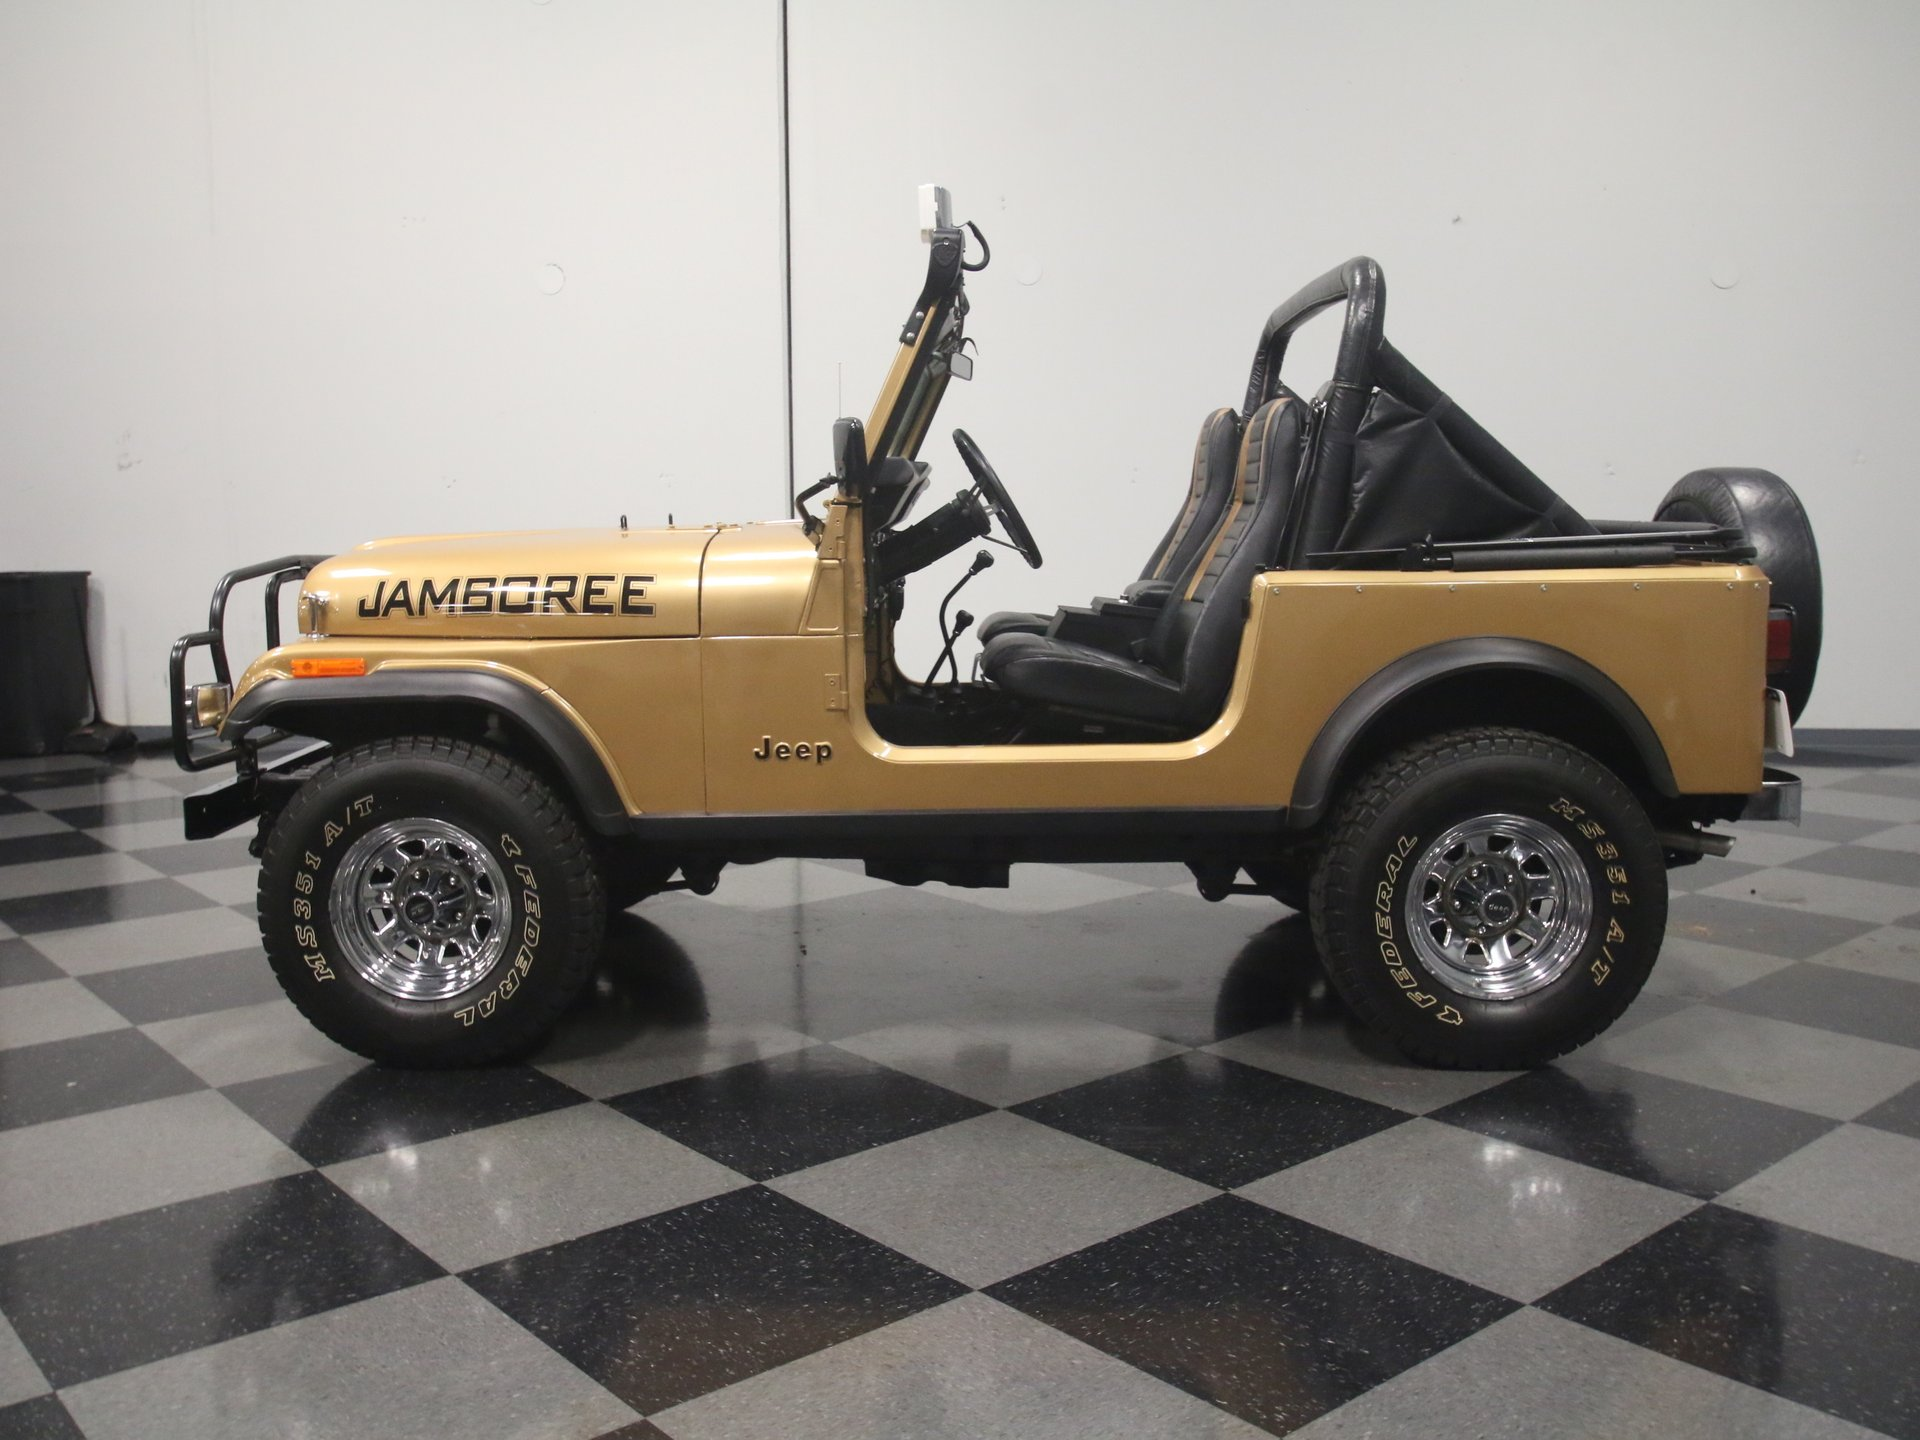 1982 jeep cj7 jamboree 30th anniversary